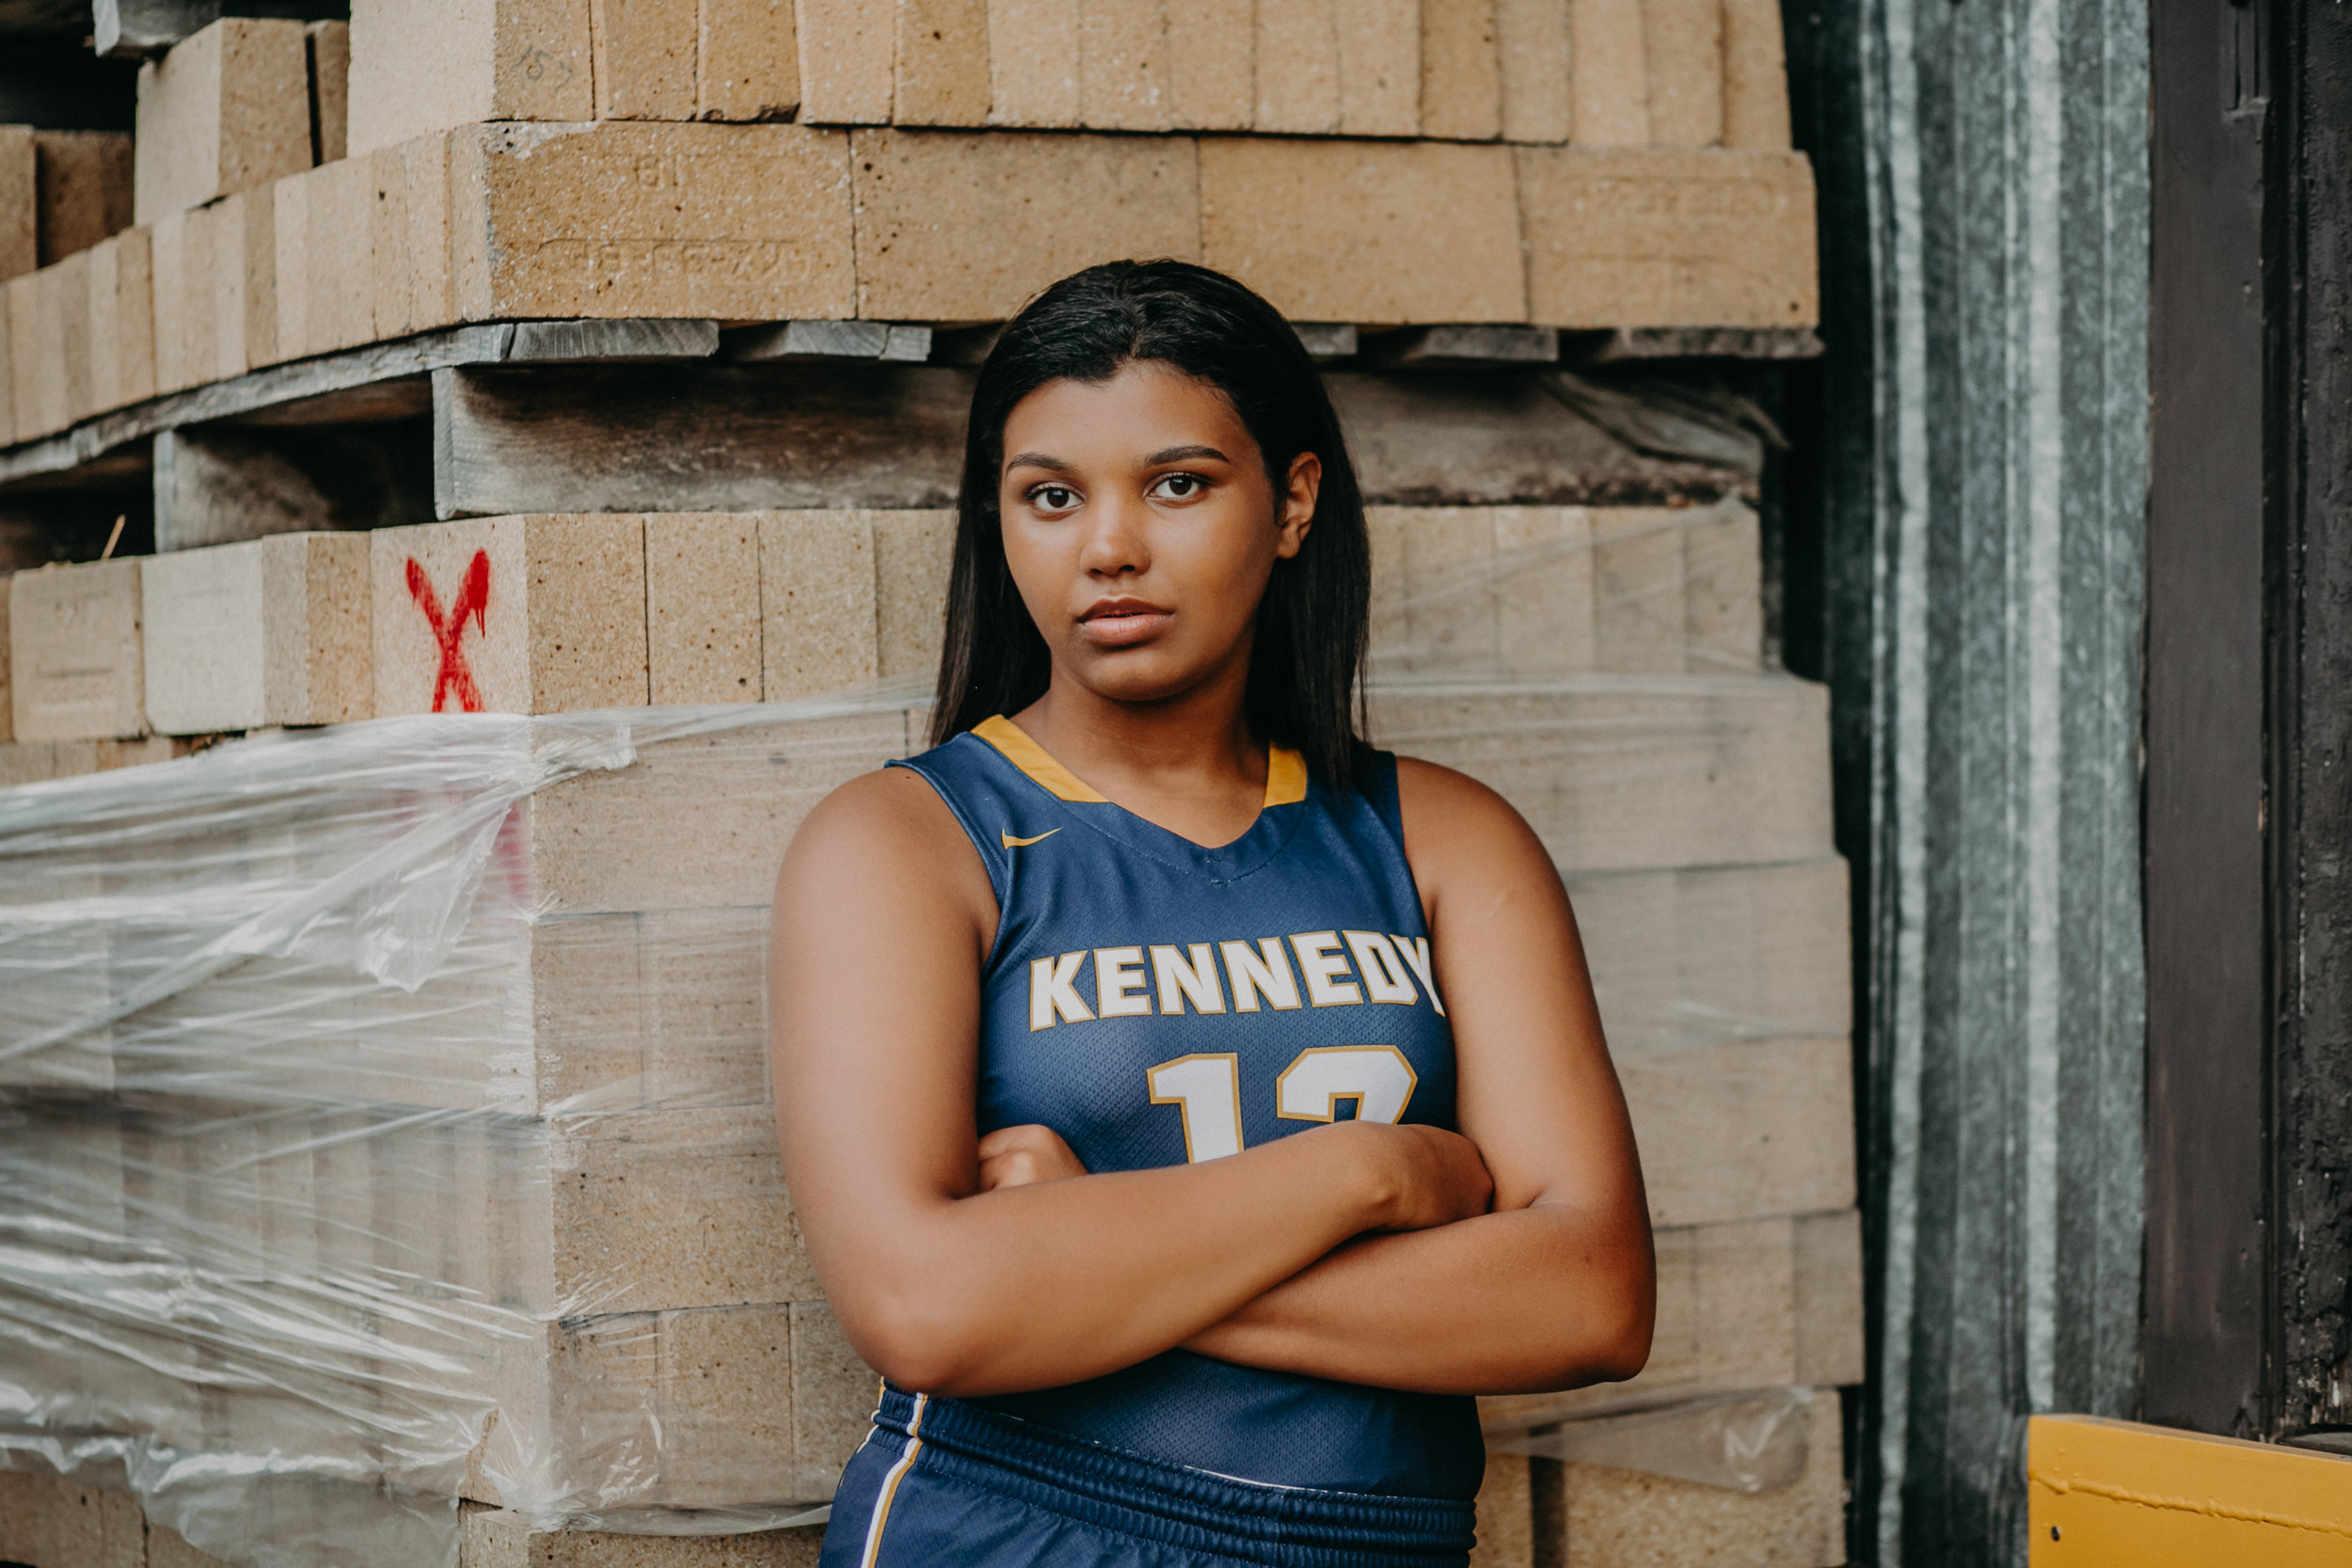 black female basketball player from Bloomington Kennedy High School posing in Hudson WI for her senior photo session